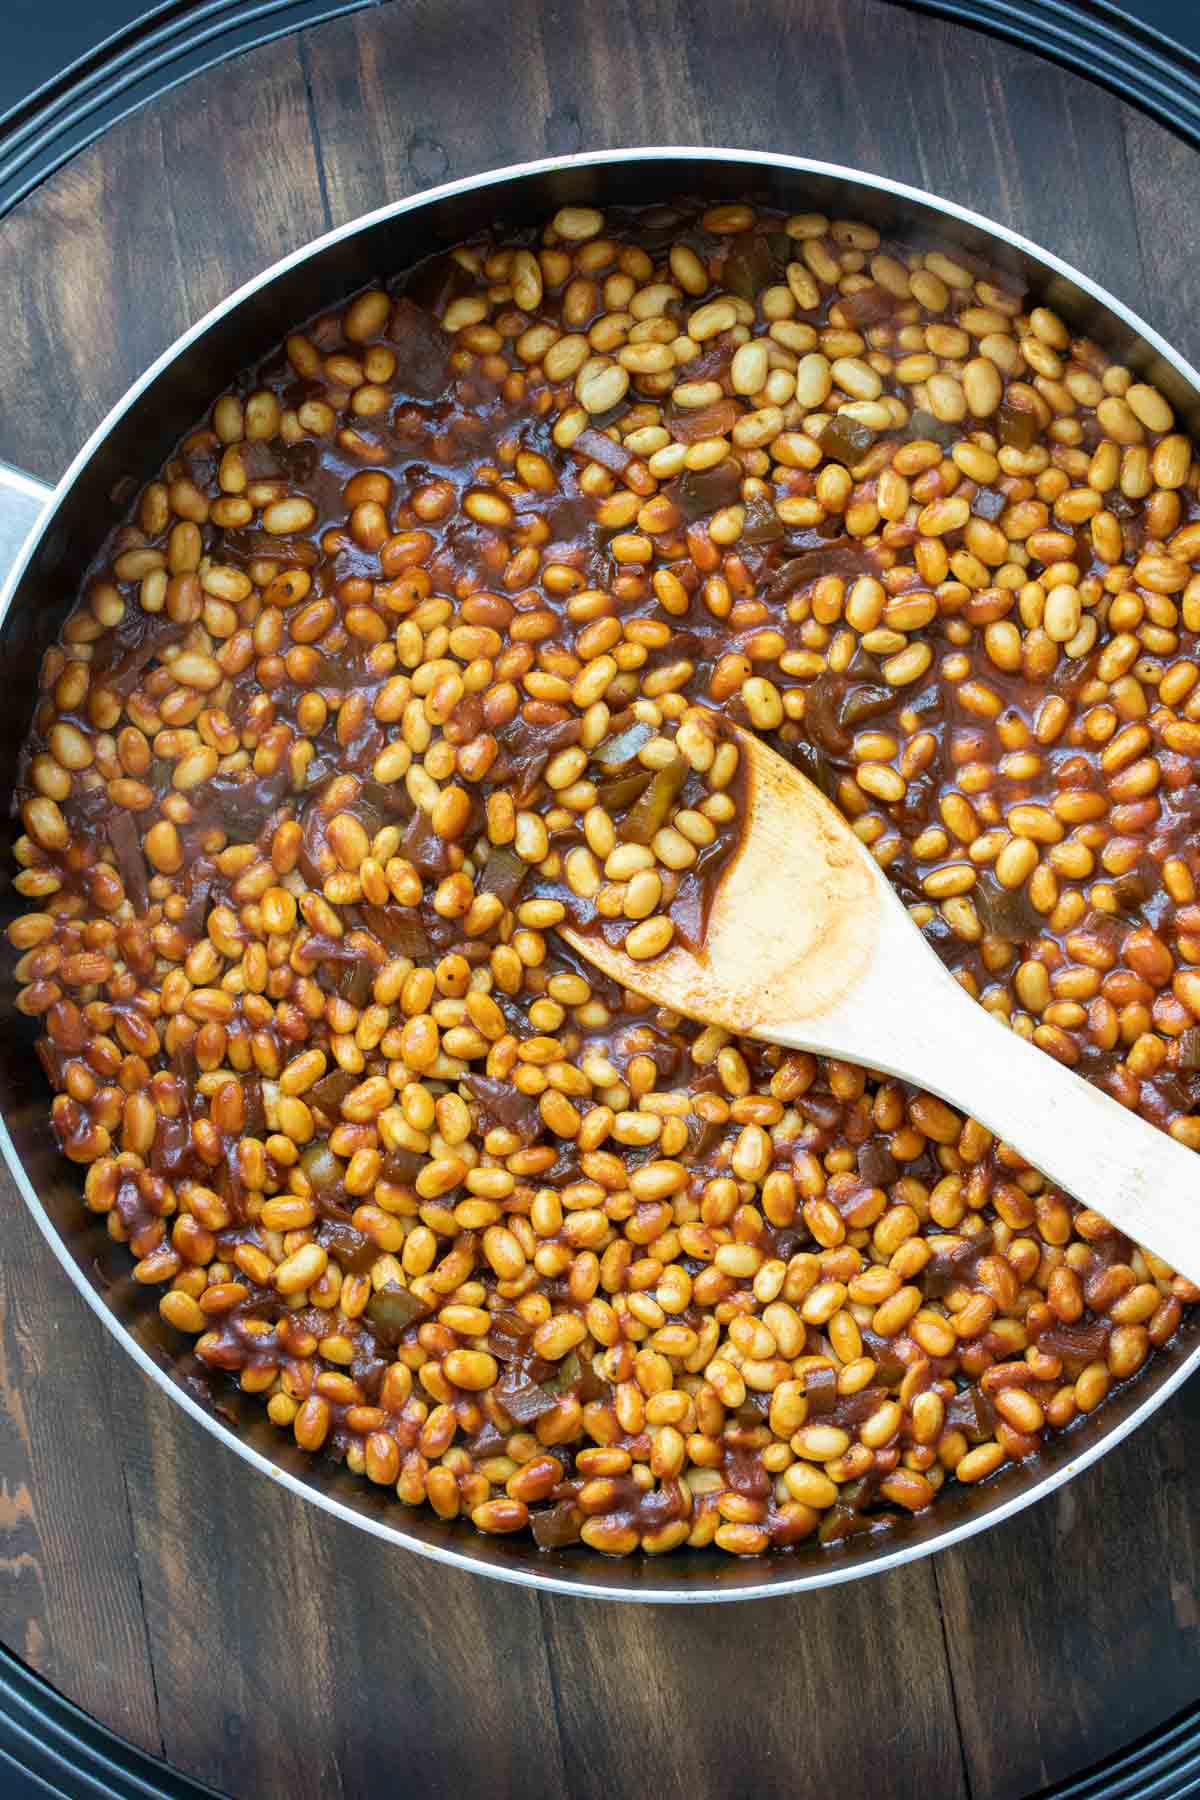 Beans in a pan with ingredients for a baked bean sauce